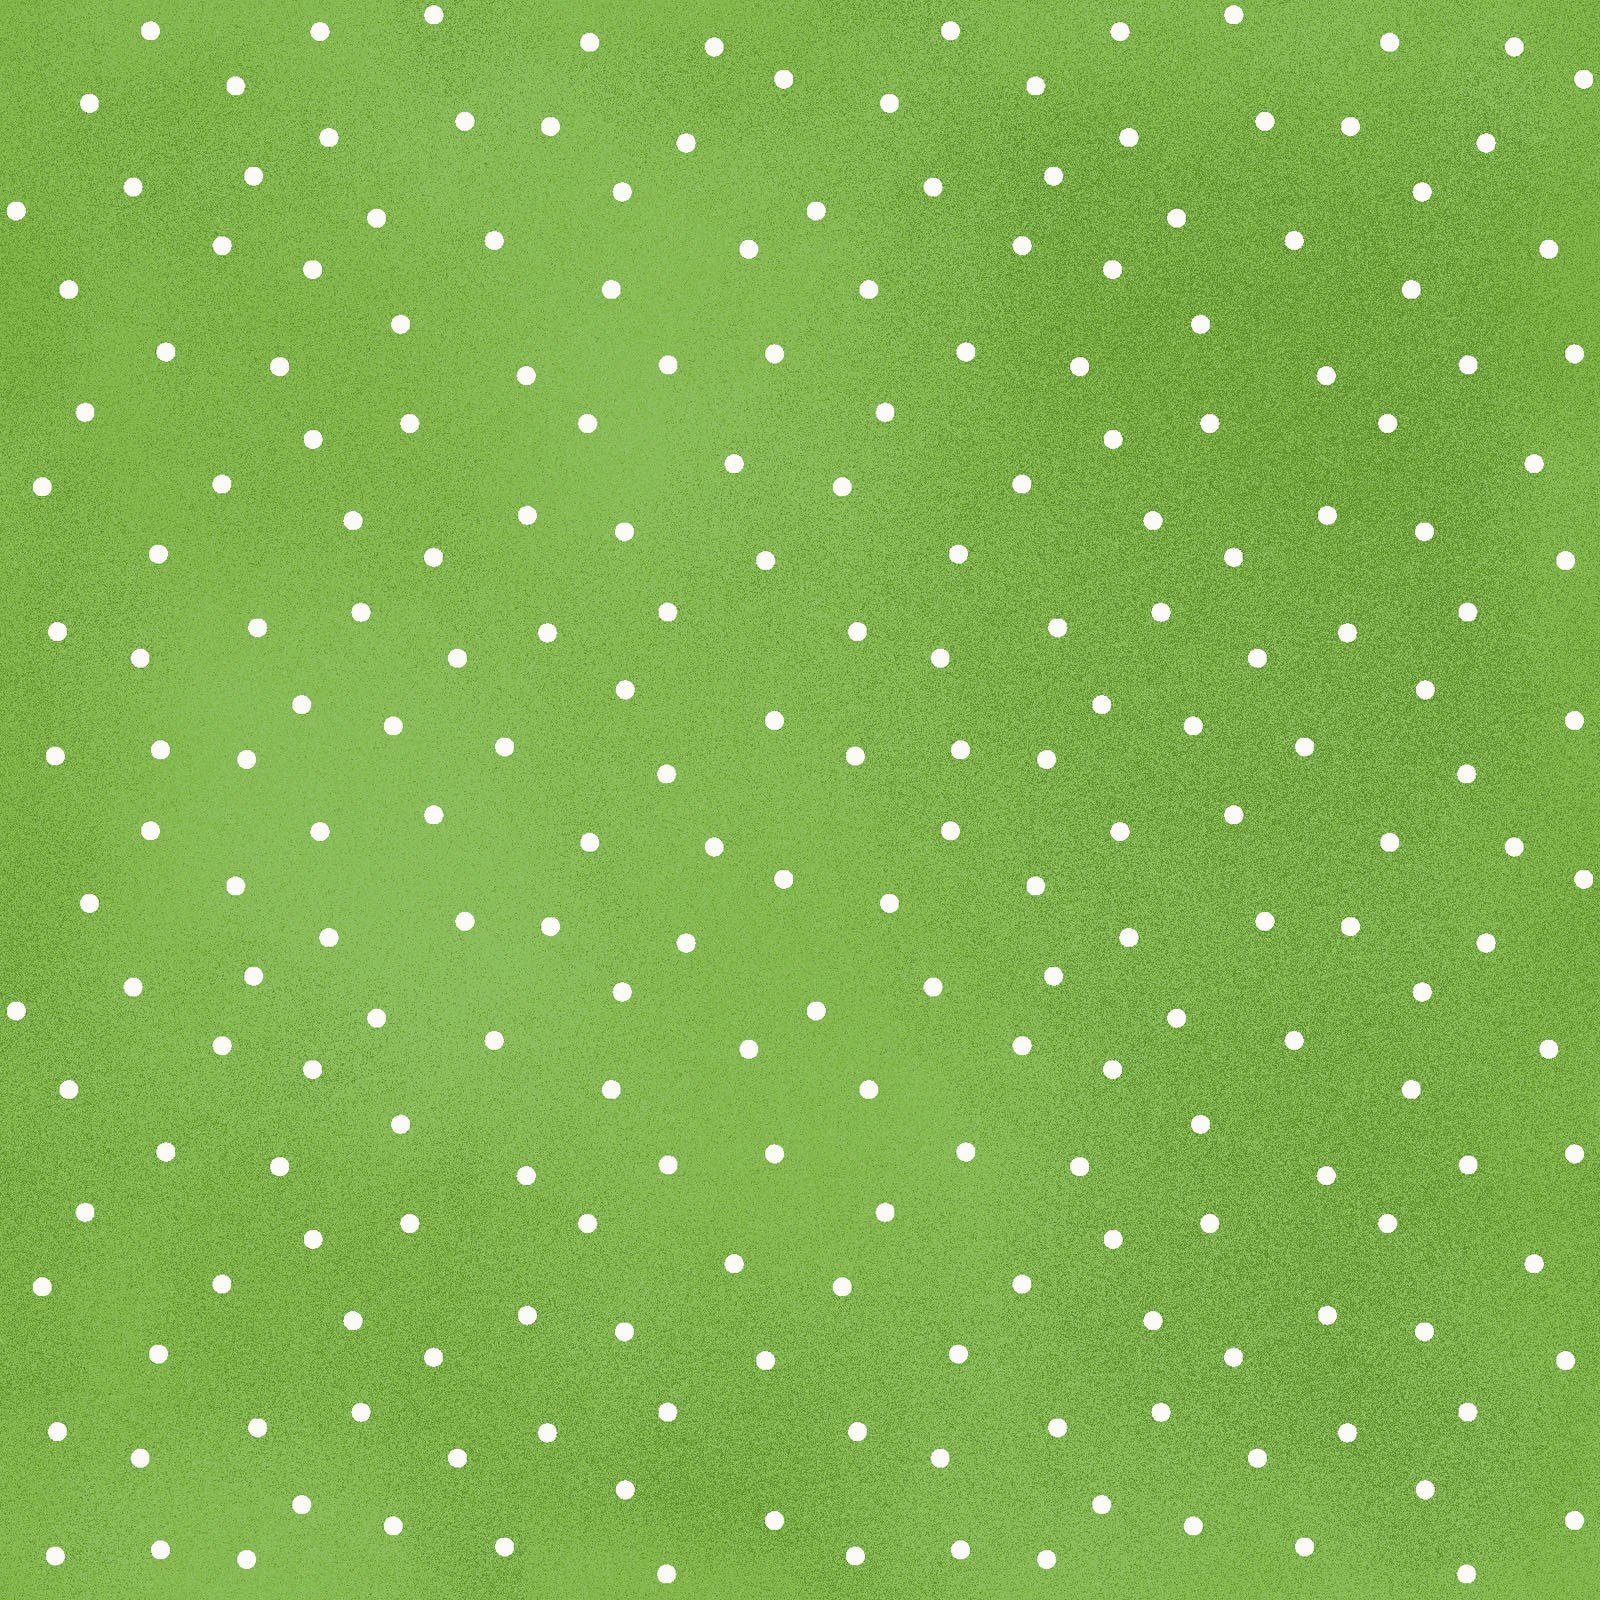 Beautiful Basics 8119-GG Scattered dots white on green